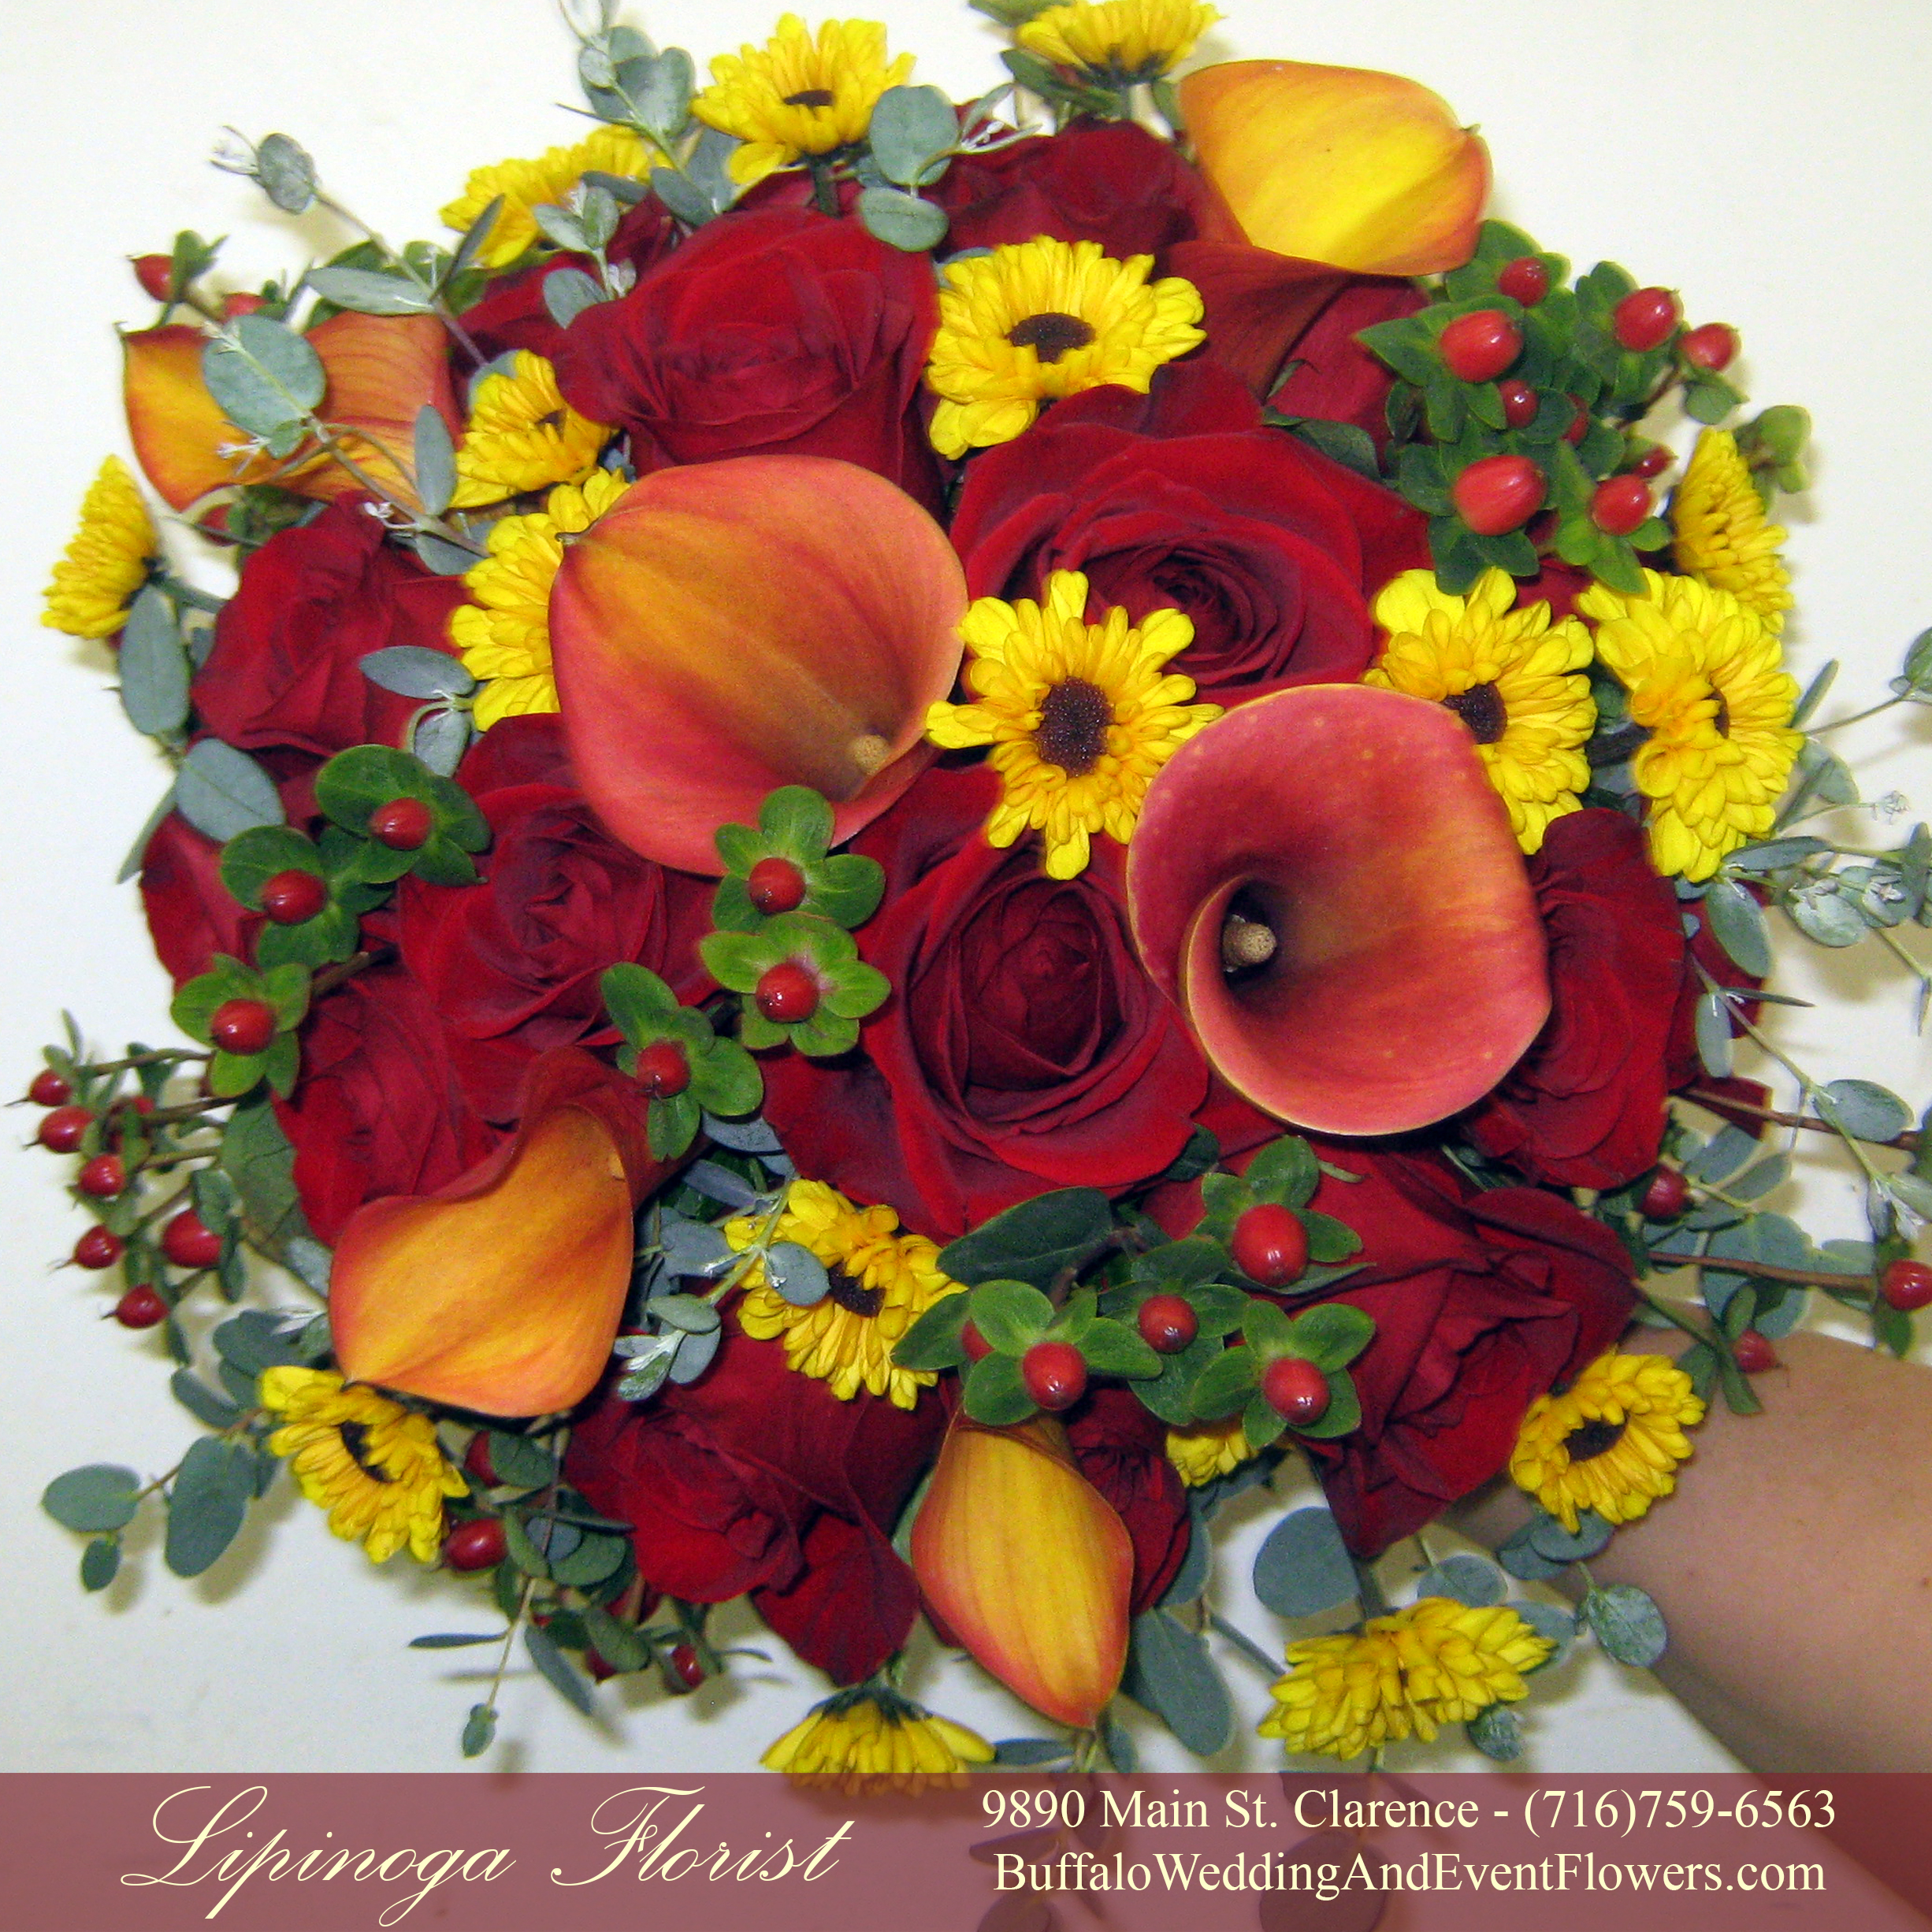 Fall wedding flowers buffalo wedding event flowers by lipinoga wedding florist buffalo fall izmirmasajfo